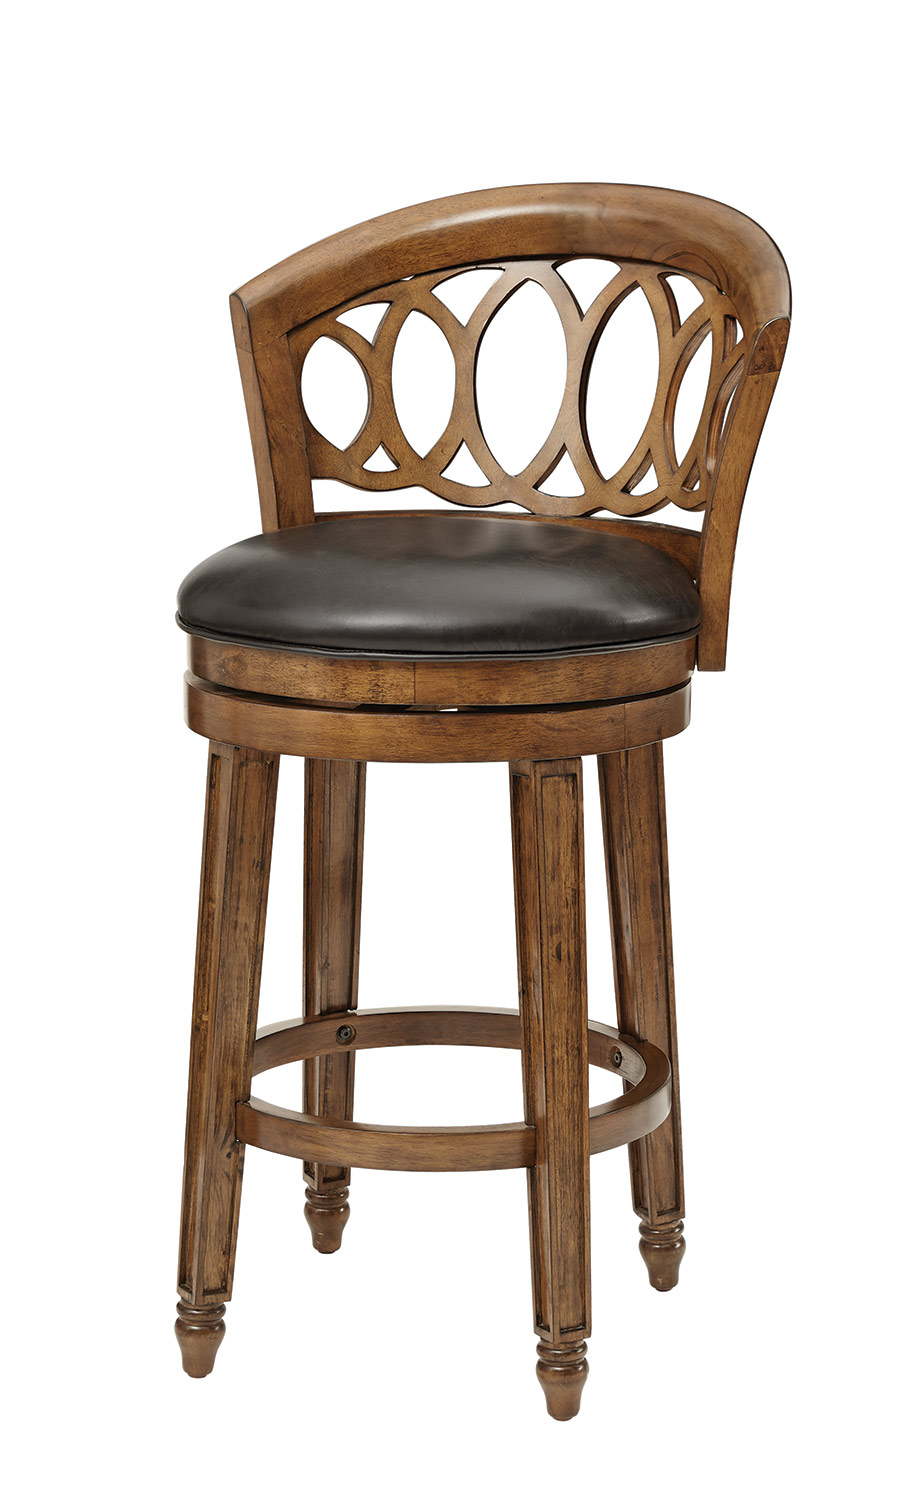 Hillsdale Adelyn Swivel Bar Stool - Brown Cherry Finish